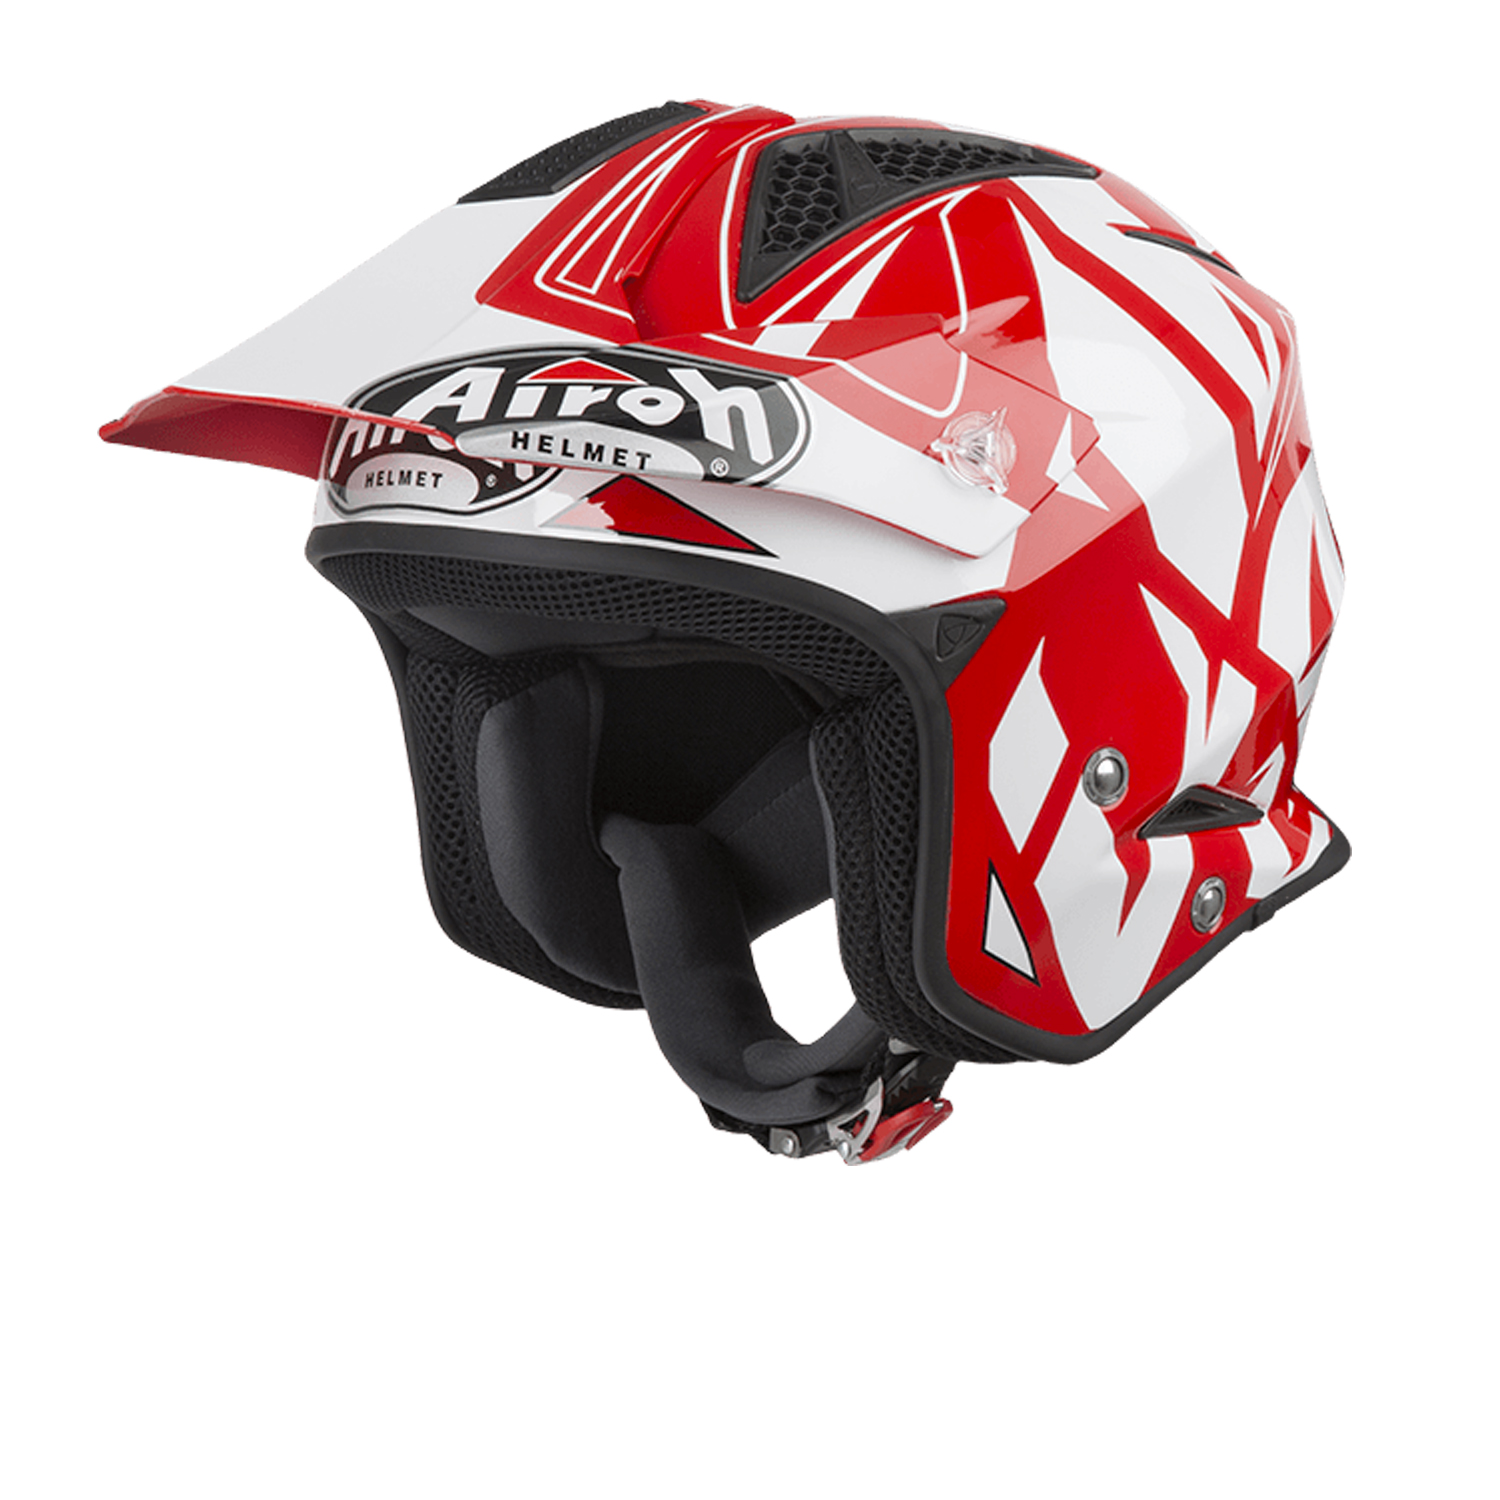 Casco Airoh  Jet TRR S Convert Rosso Bianco Lucido